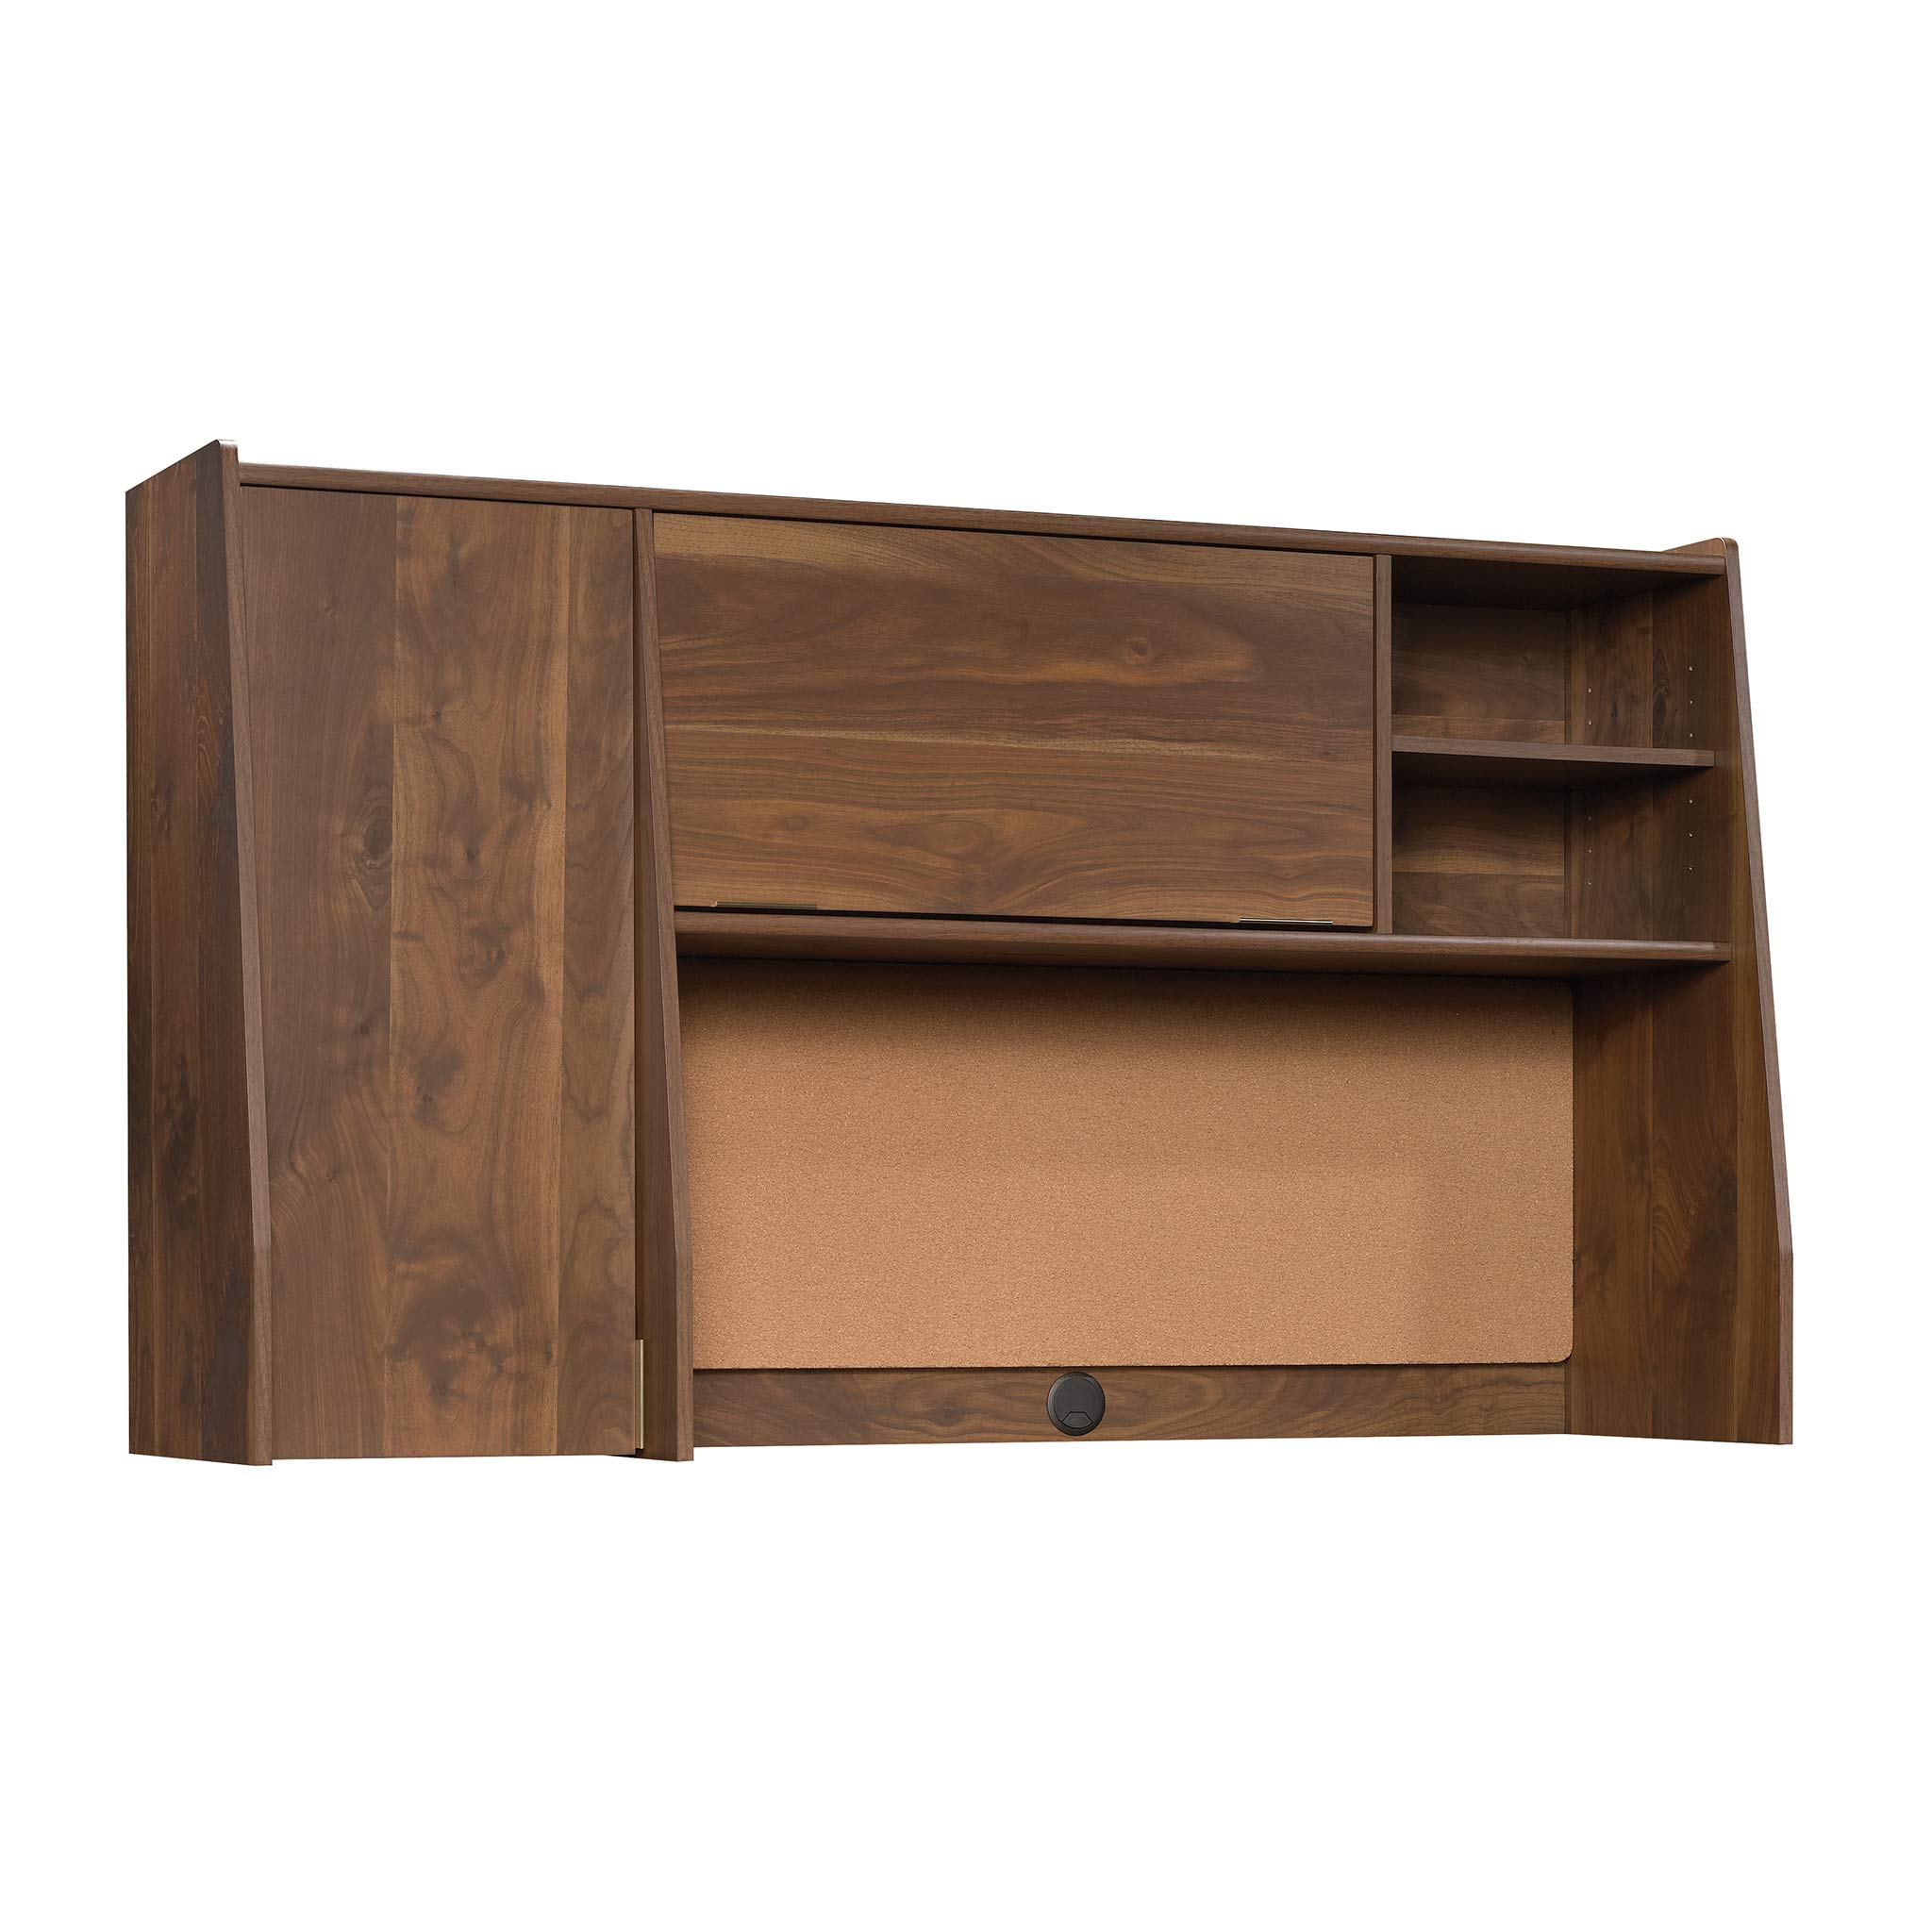 Sauder 422277 Clifford Place Hutch, L: 58.90'' x W: 16.34'' x H: 34.13'', Grand Walnut finish